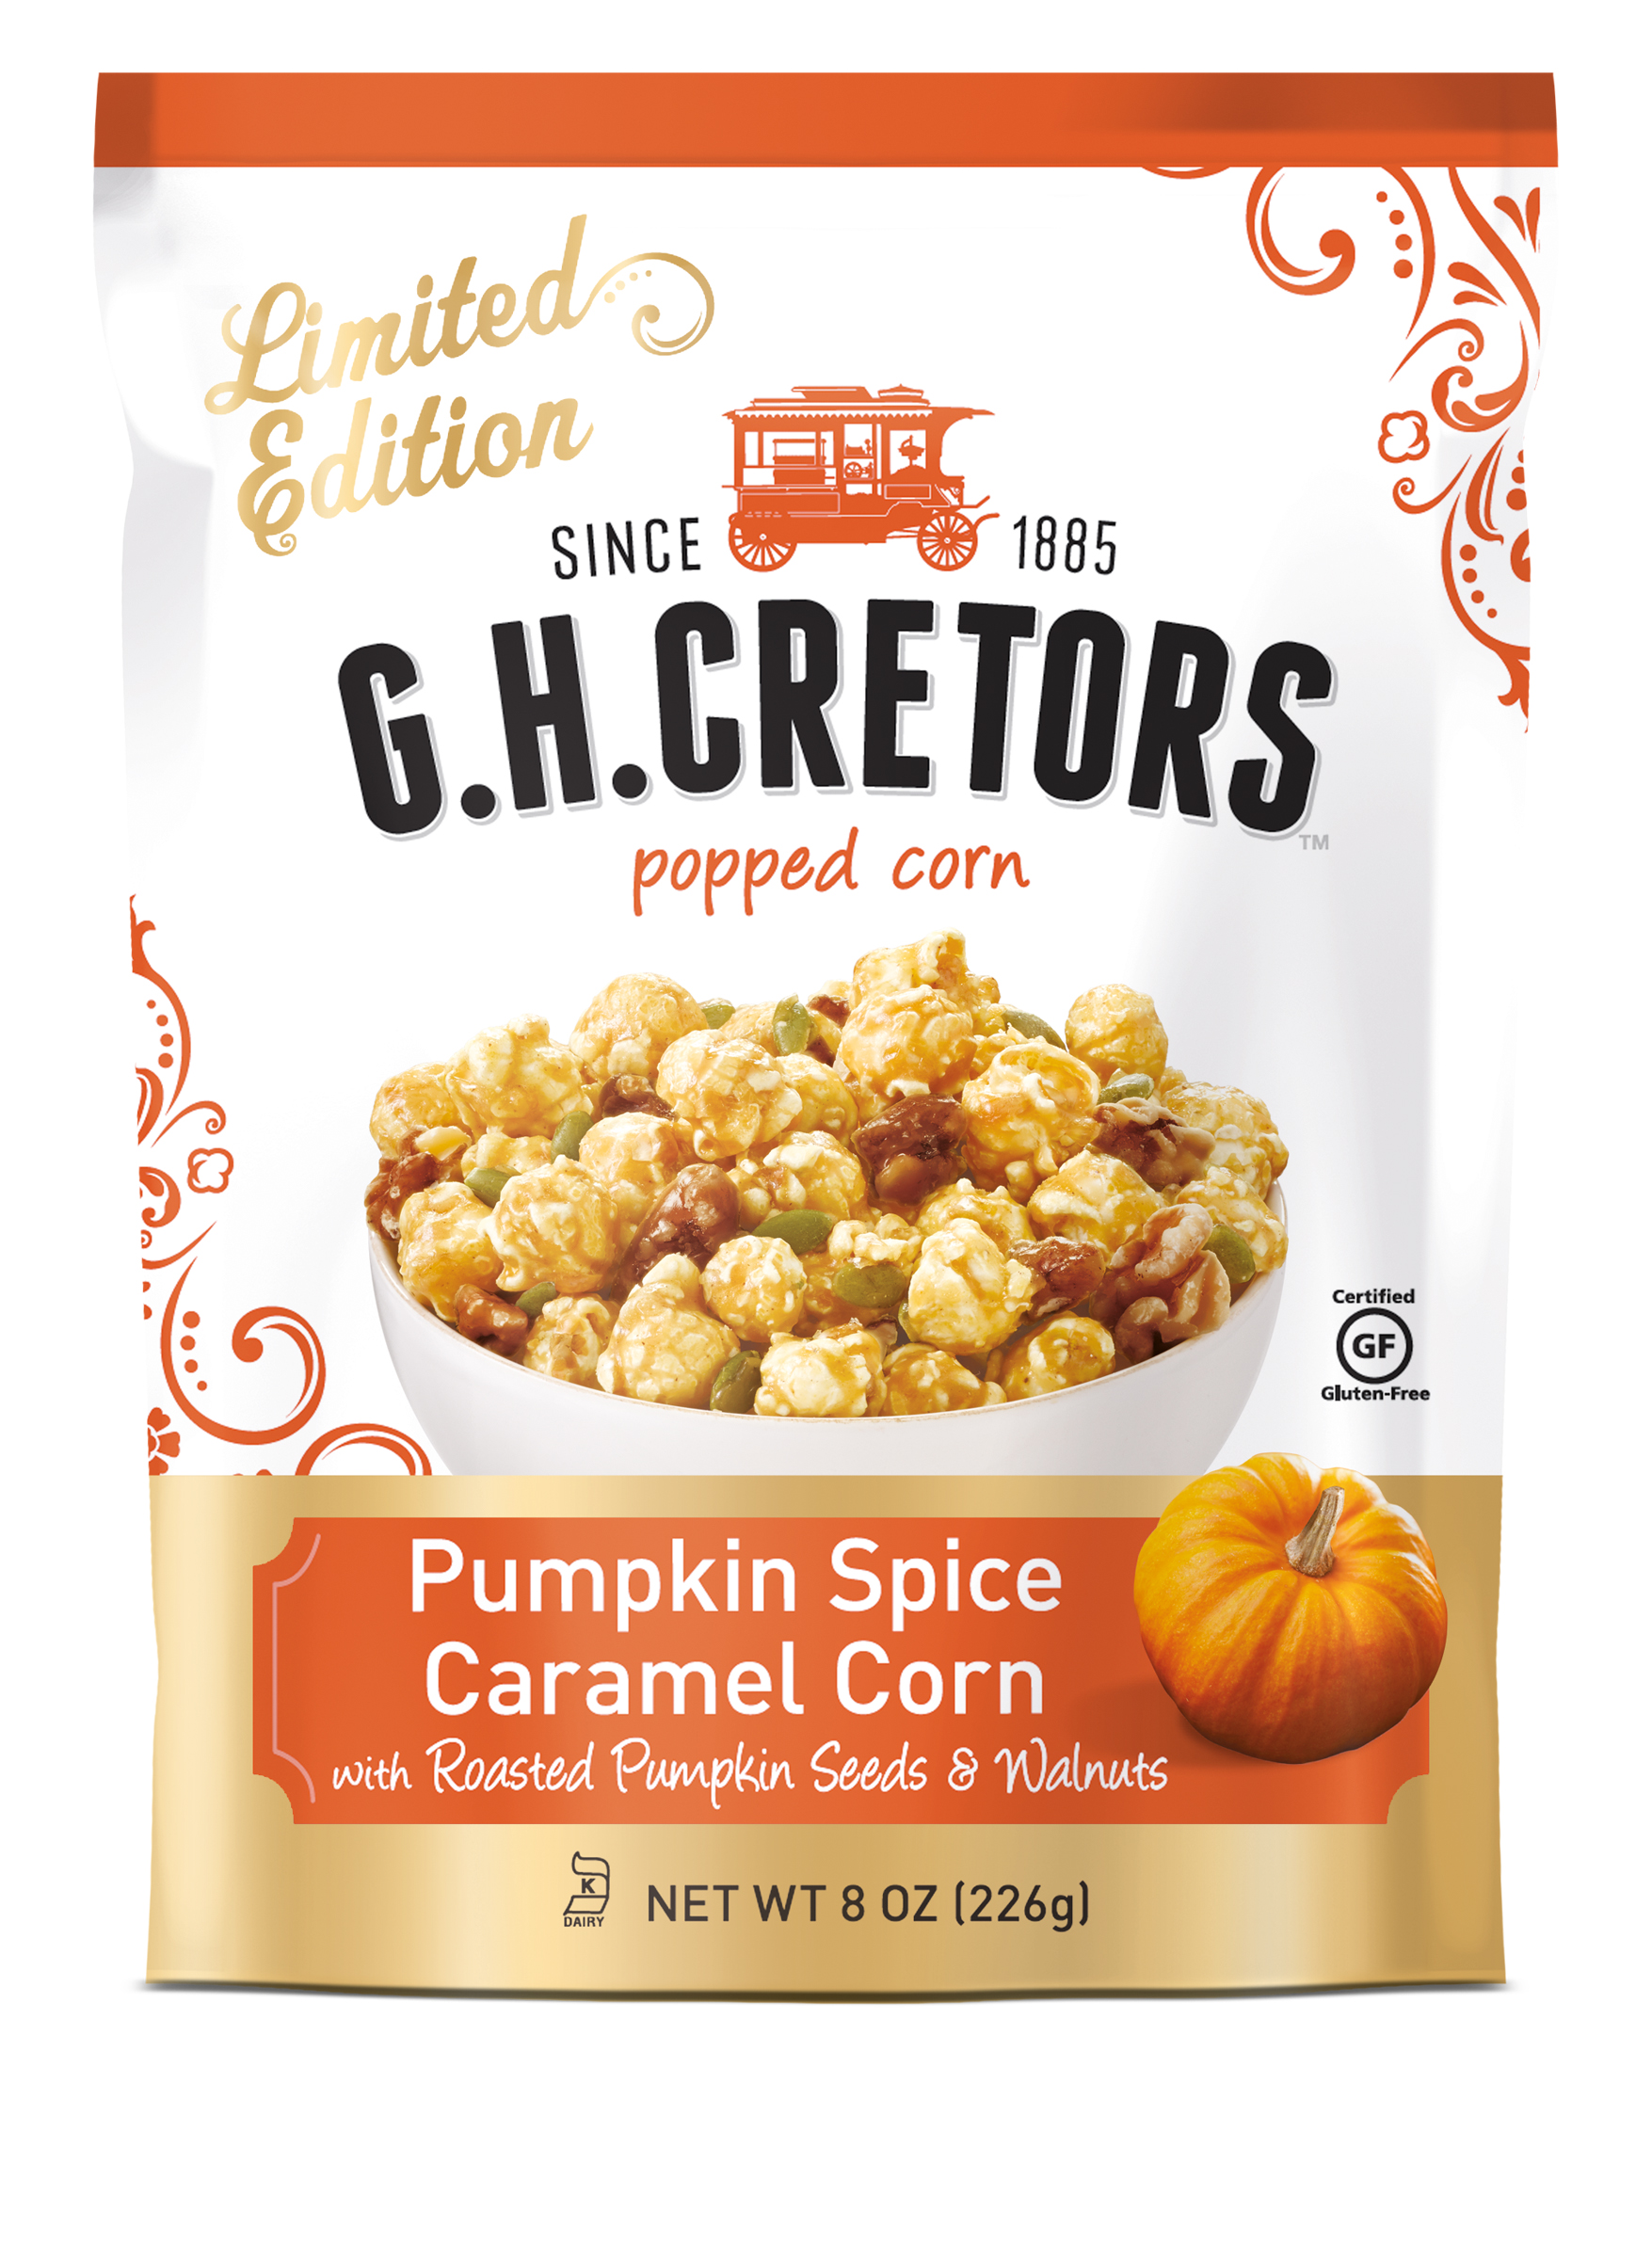 G.H. Cretors: Limited Edition Popped Corn